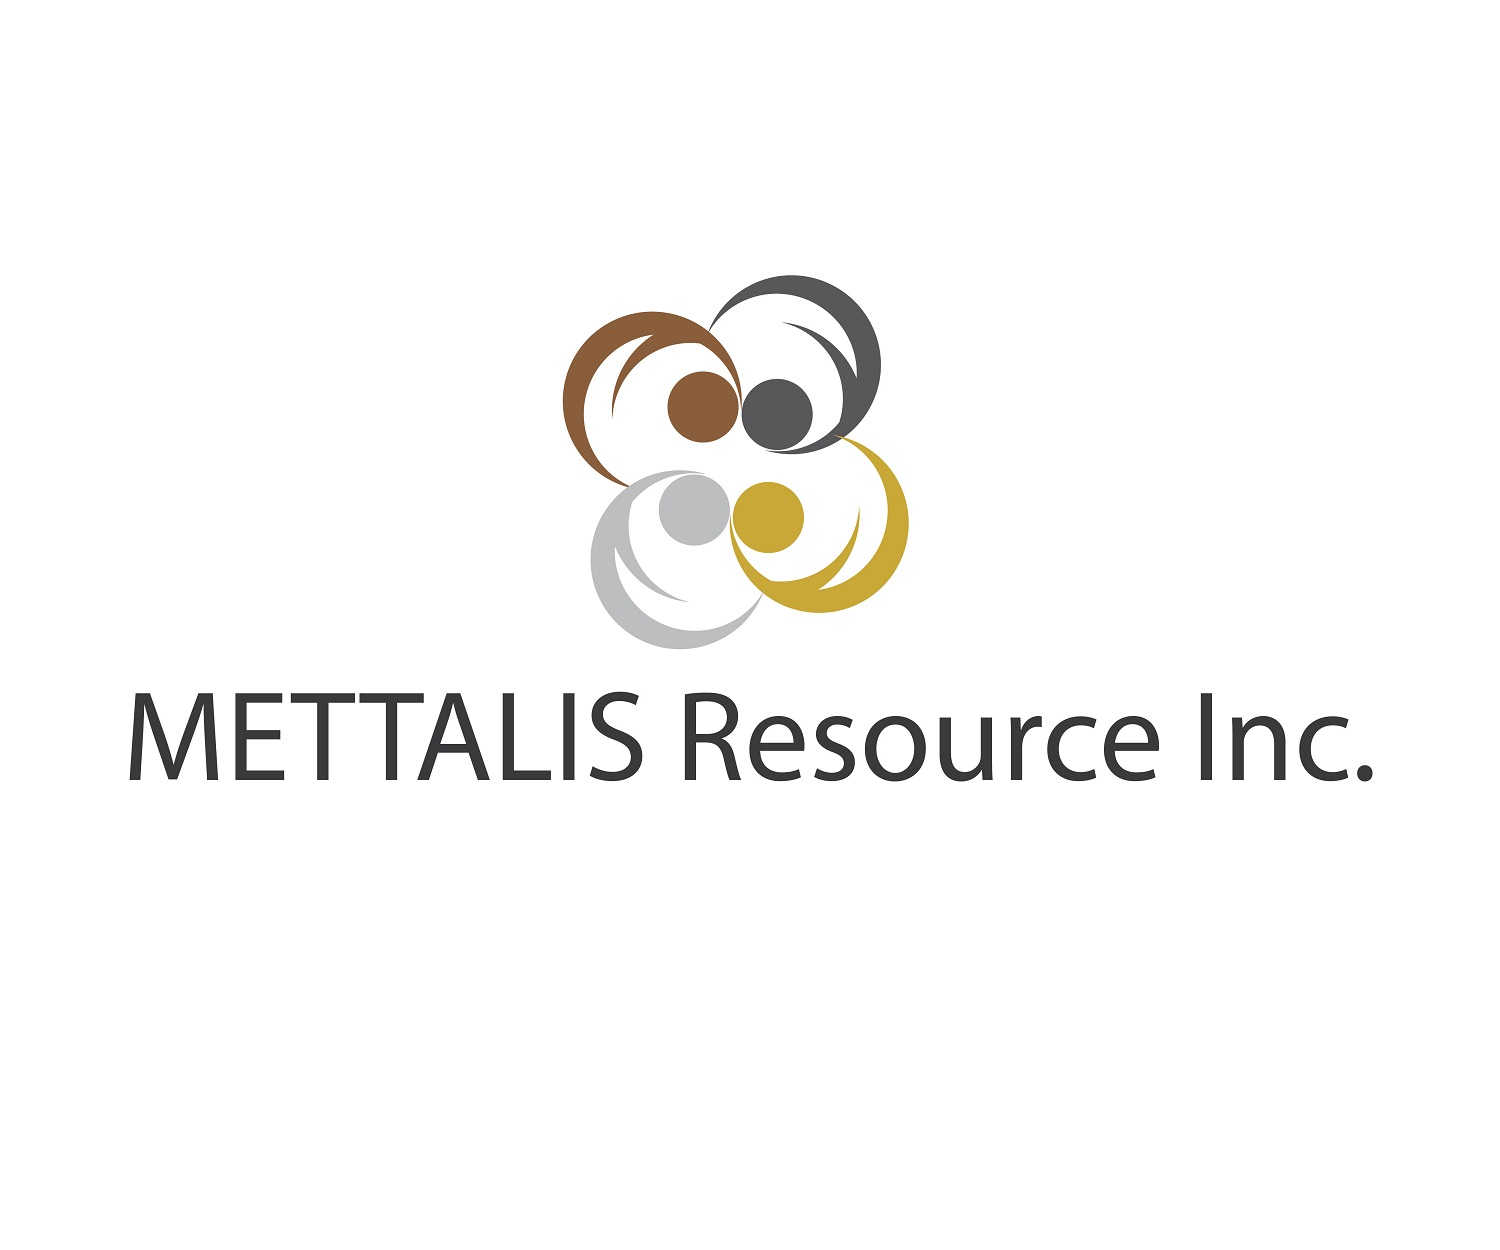 Logo Design by jhunzkie24 - Entry No. 150 in the Logo Design Contest Metallis Resources Inc Logo Design.